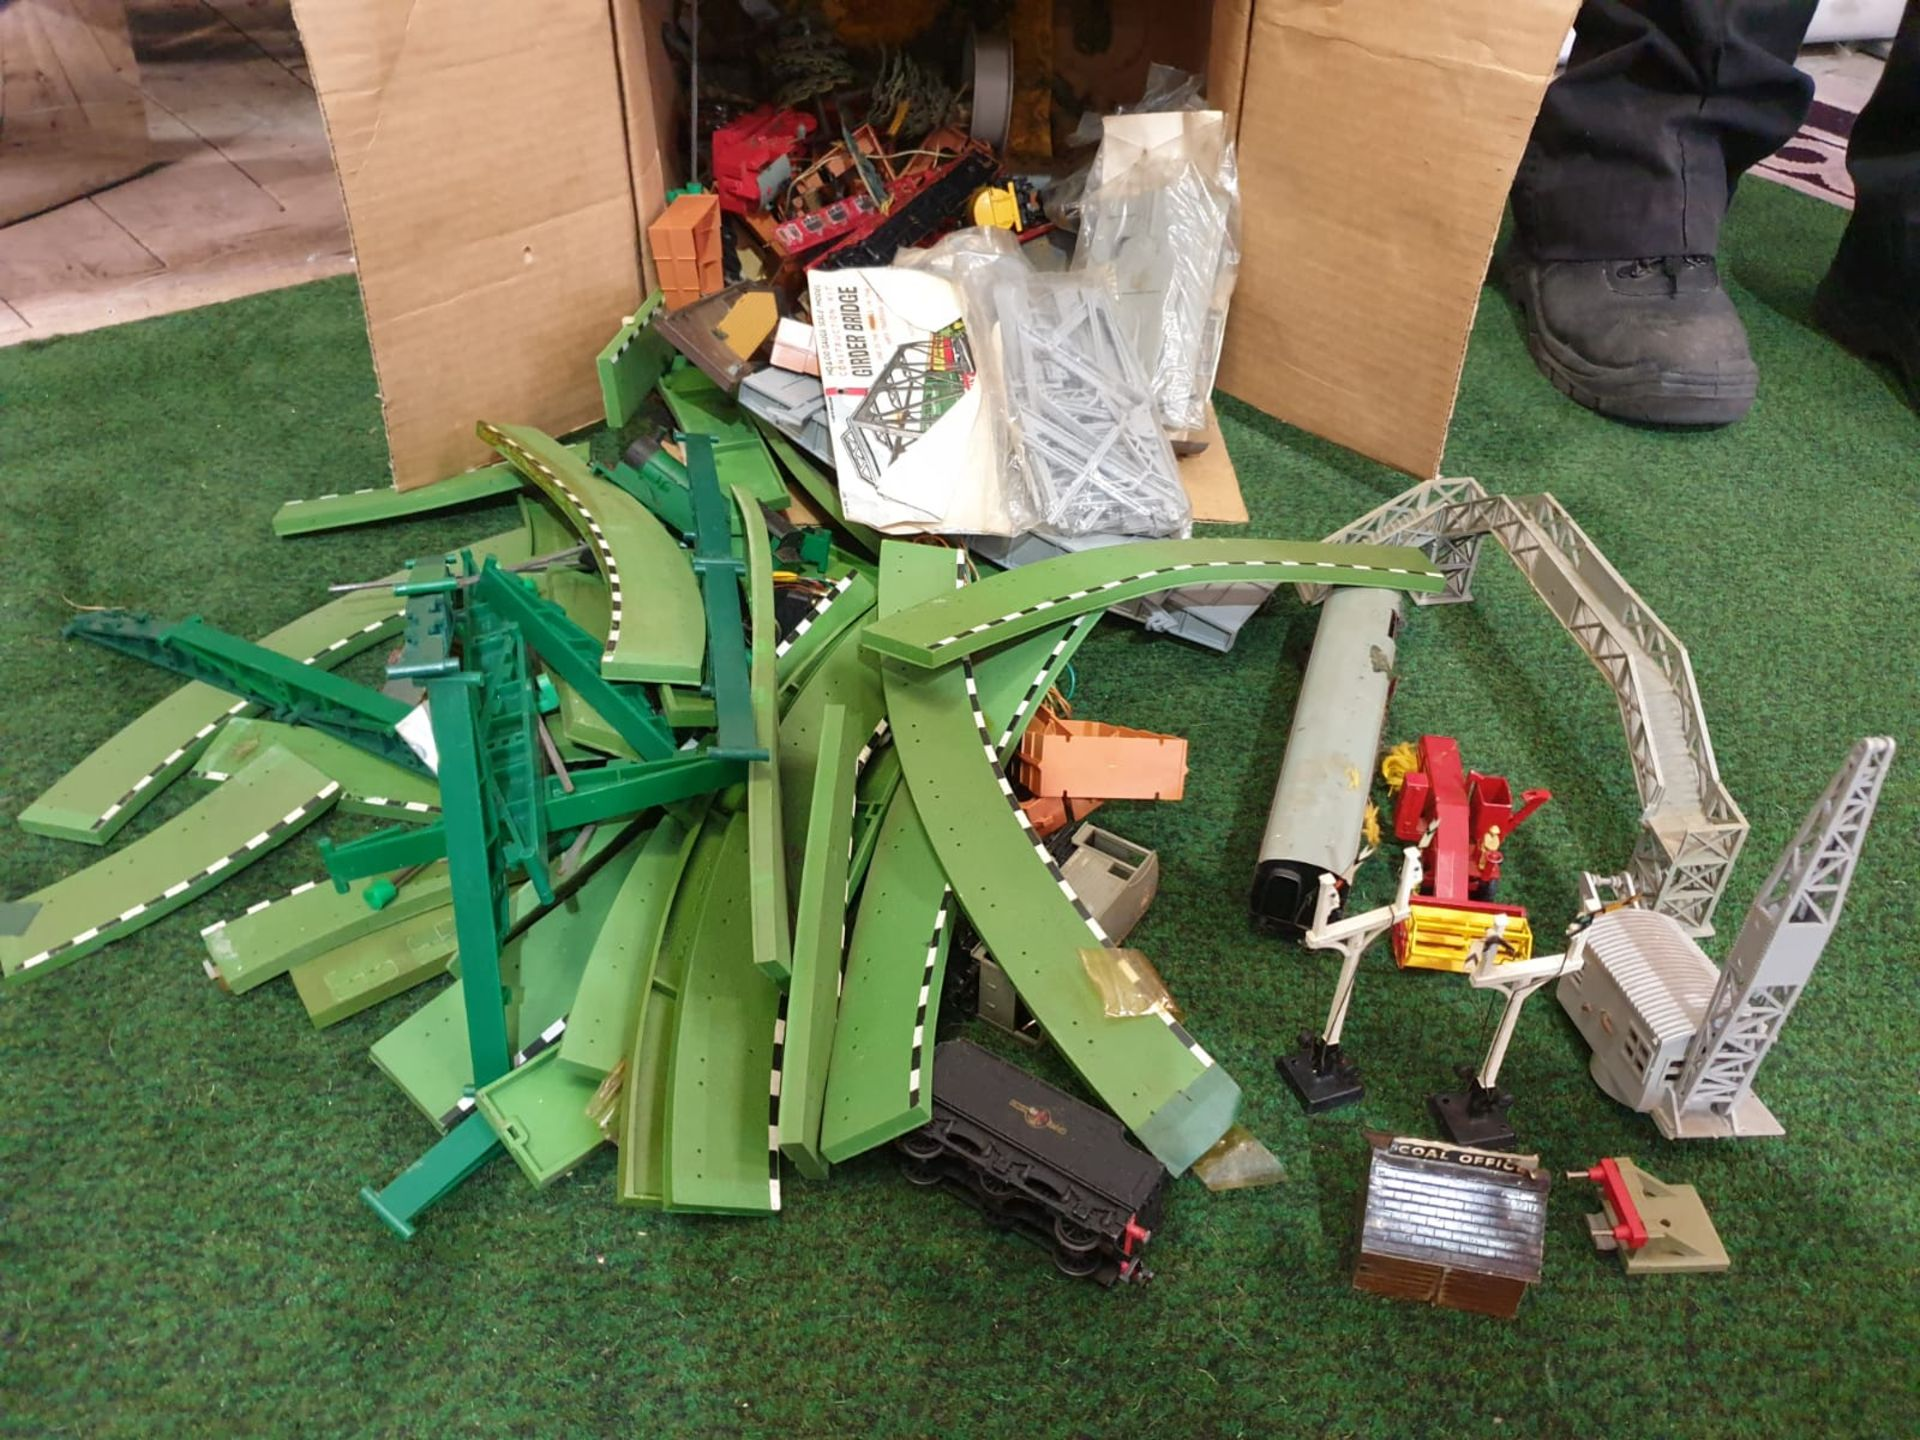 A box containing vintage Scalextric MM/T45G Green Straight Borders and train set accessories as